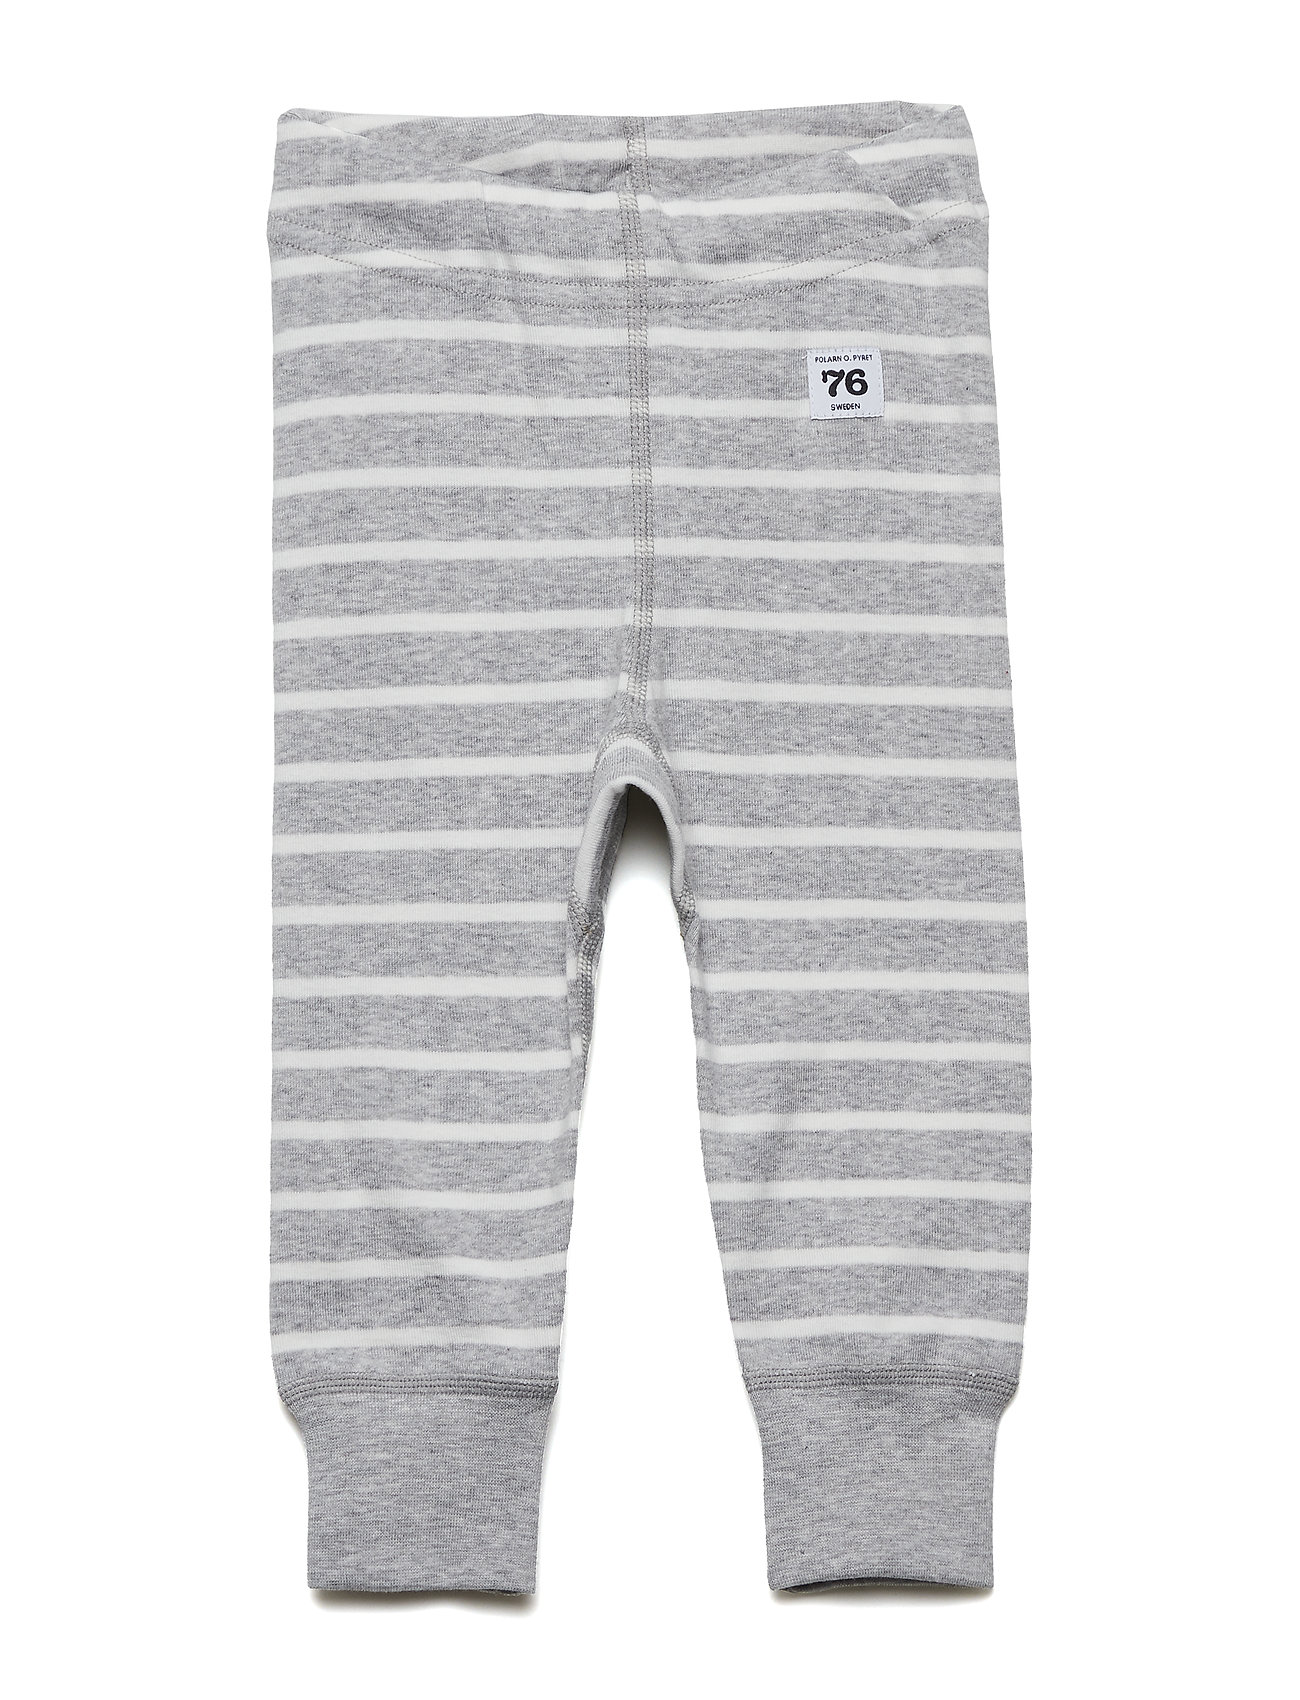 Polarn O. Pyret Long Johns PO.P Stripe - GREYMELANGE